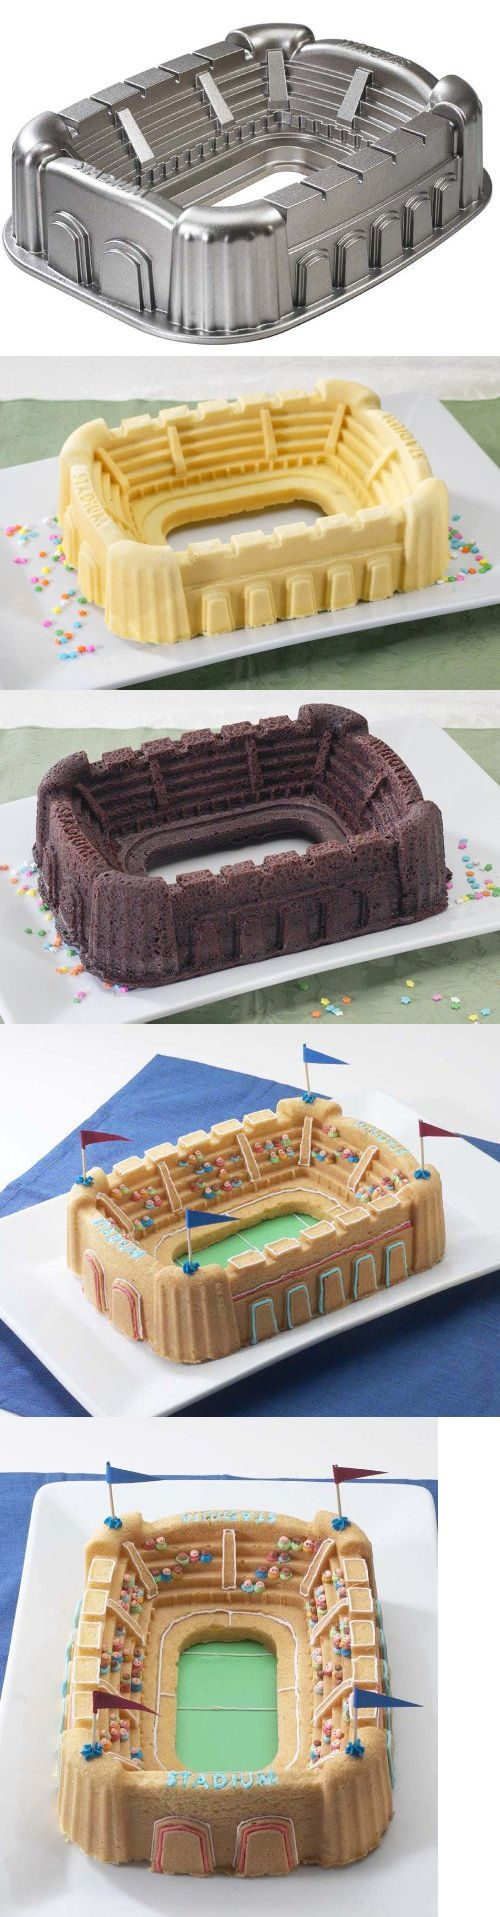 Nordic Ware Pro Cast Stadium Pan, Support your home team on game day with a cake made in this unique Stadium Bundt Pan. Whether the game is soccer, football, basketball, baseball, or hockey, this pan will make you a winning host. Cake..., #Kitchen, #Specialty & Novelty Cake Pans, $49.99